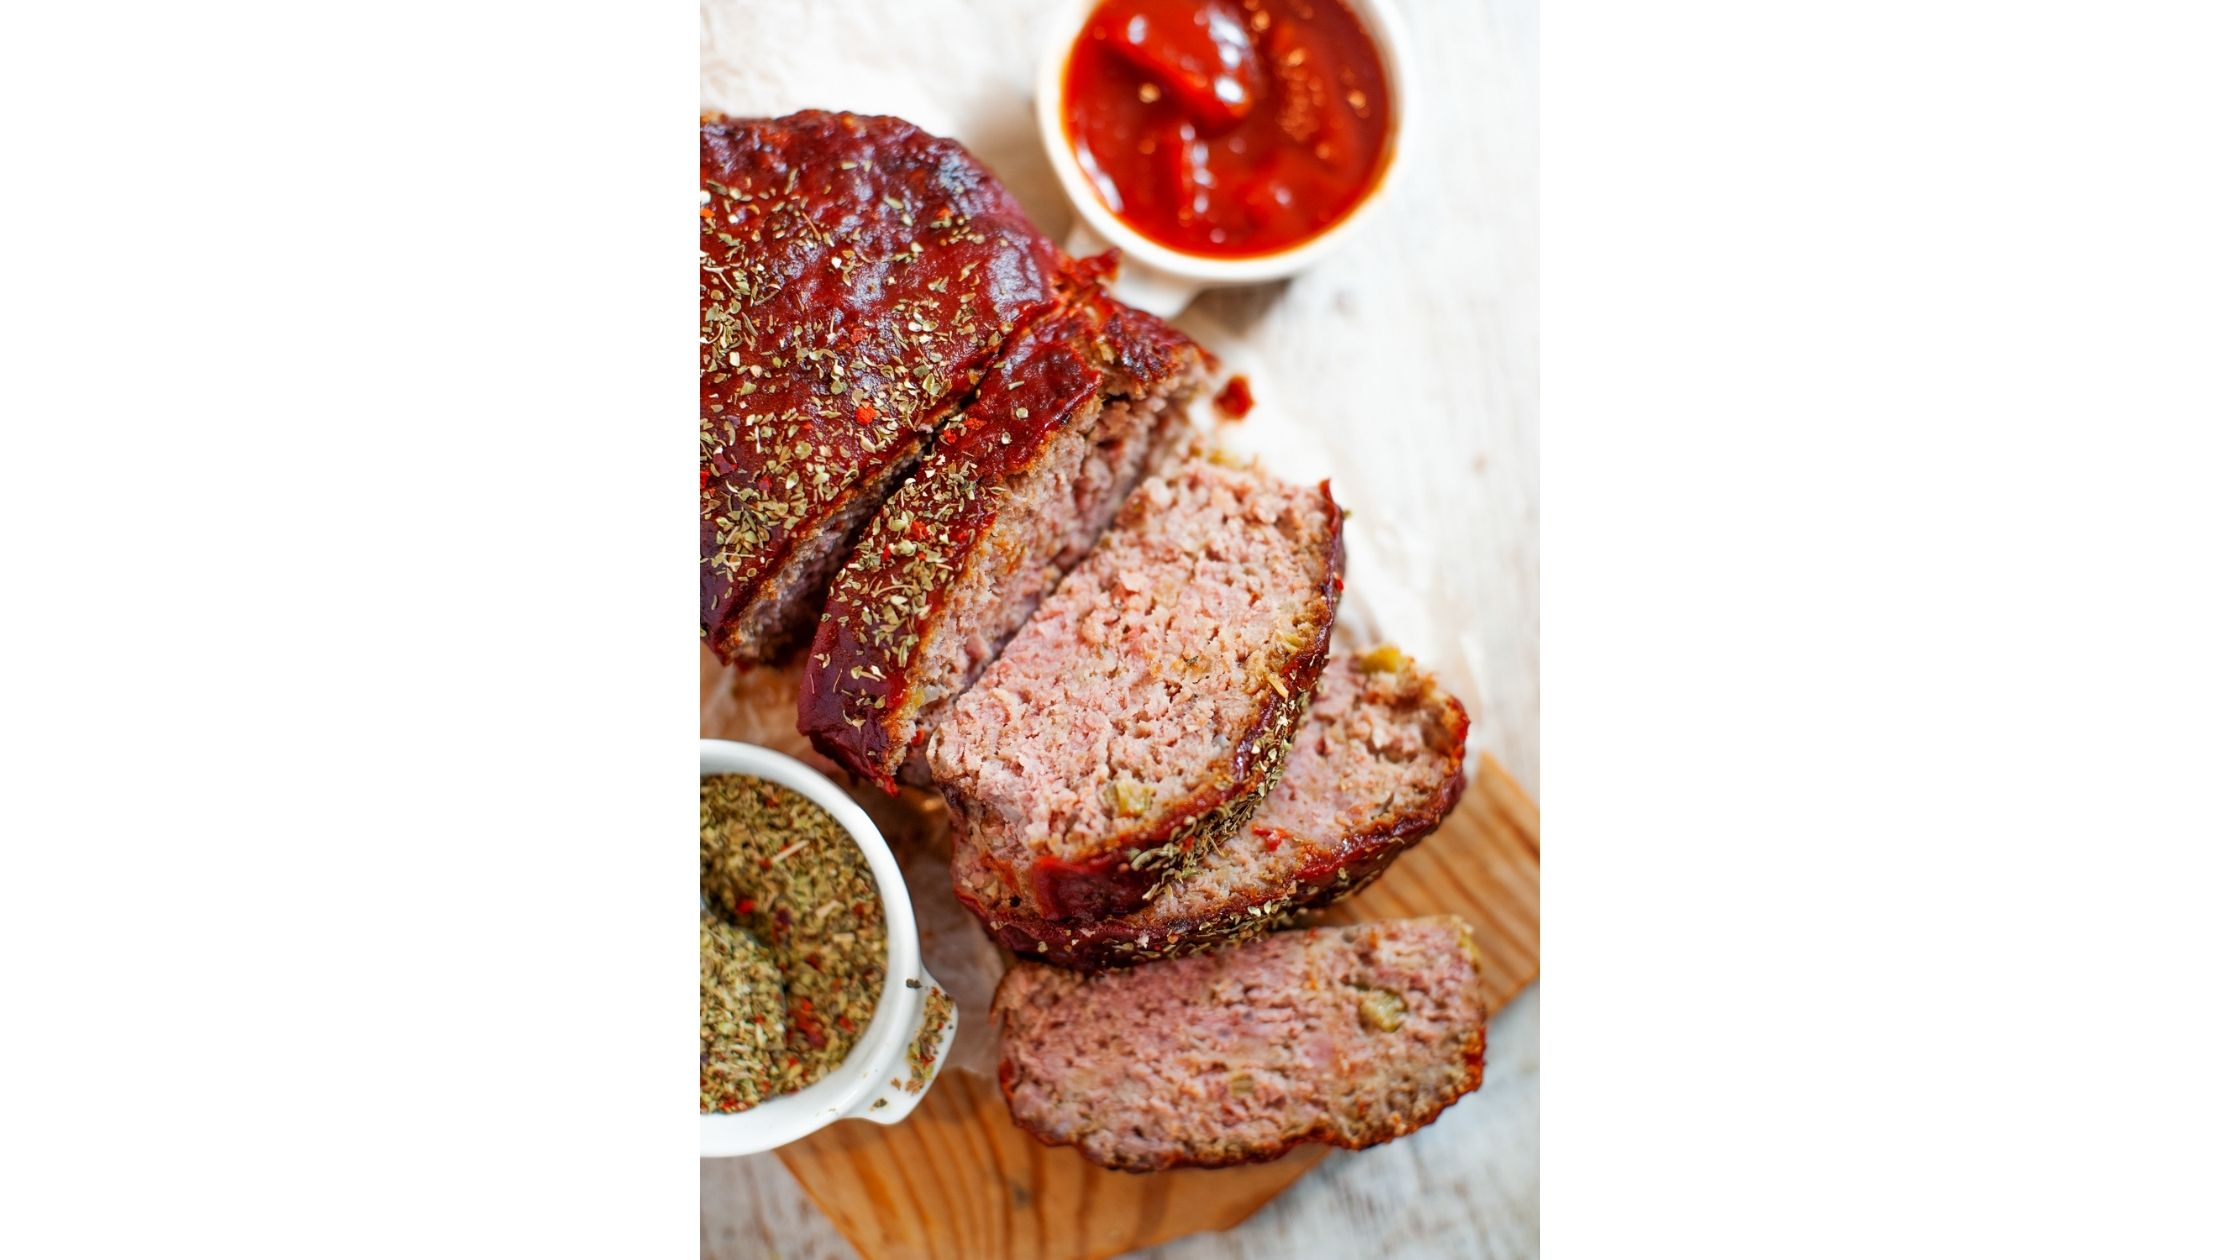 Keto Meatloaf recipe by The Diet Chef